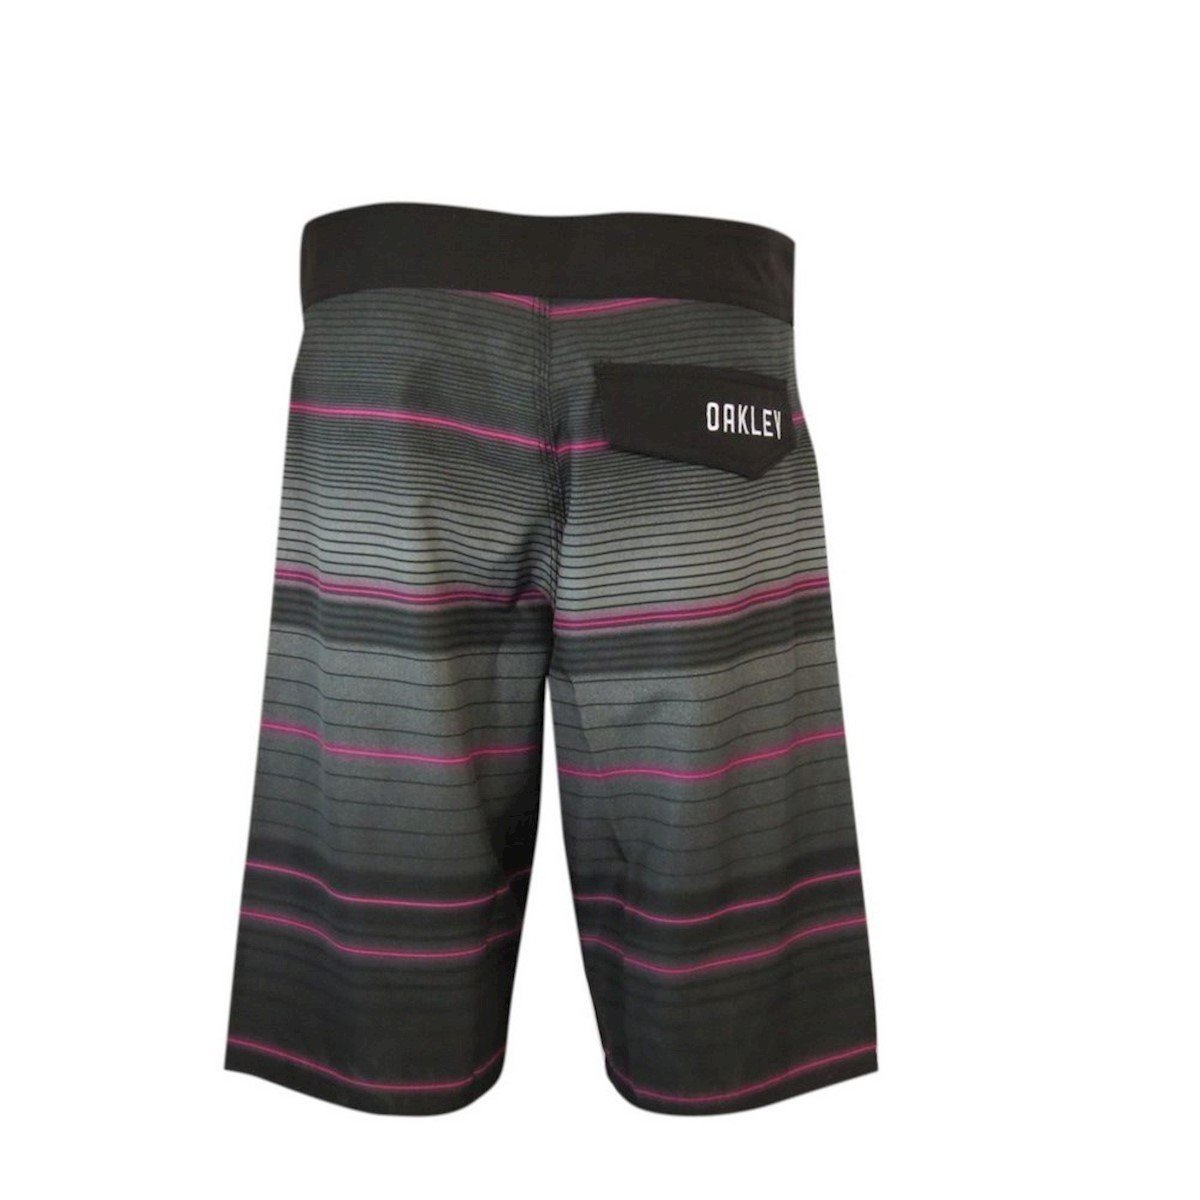 Boardshort Neon Striped Oakley Masculino  Boardshort Neon Striped Oakley  Masculino 8febe41f695